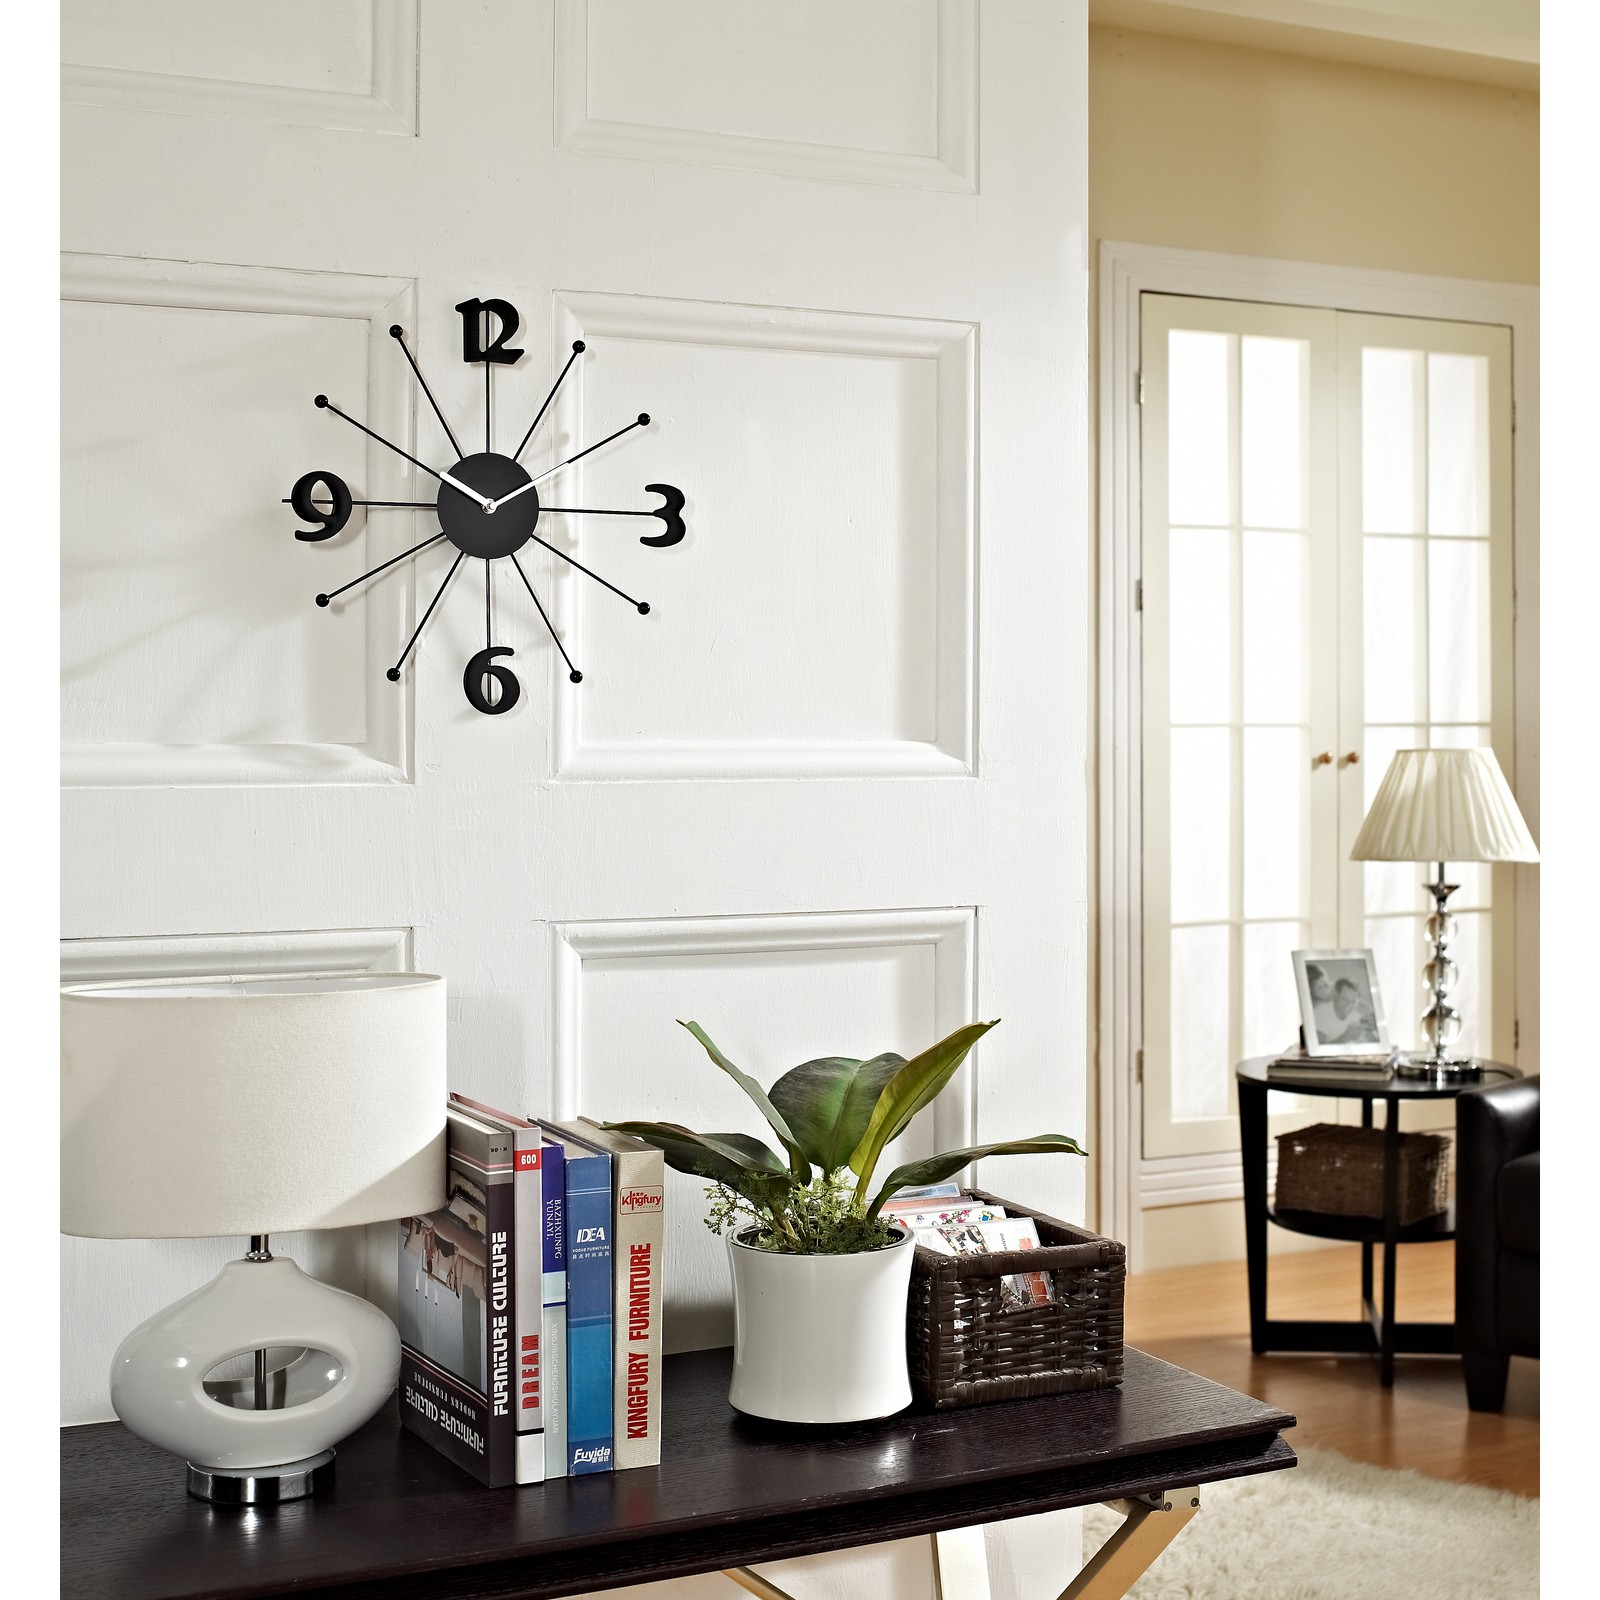 Decorative fancy wall clocks homesfeed frameless wall clock in black amipublicfo Choice Image